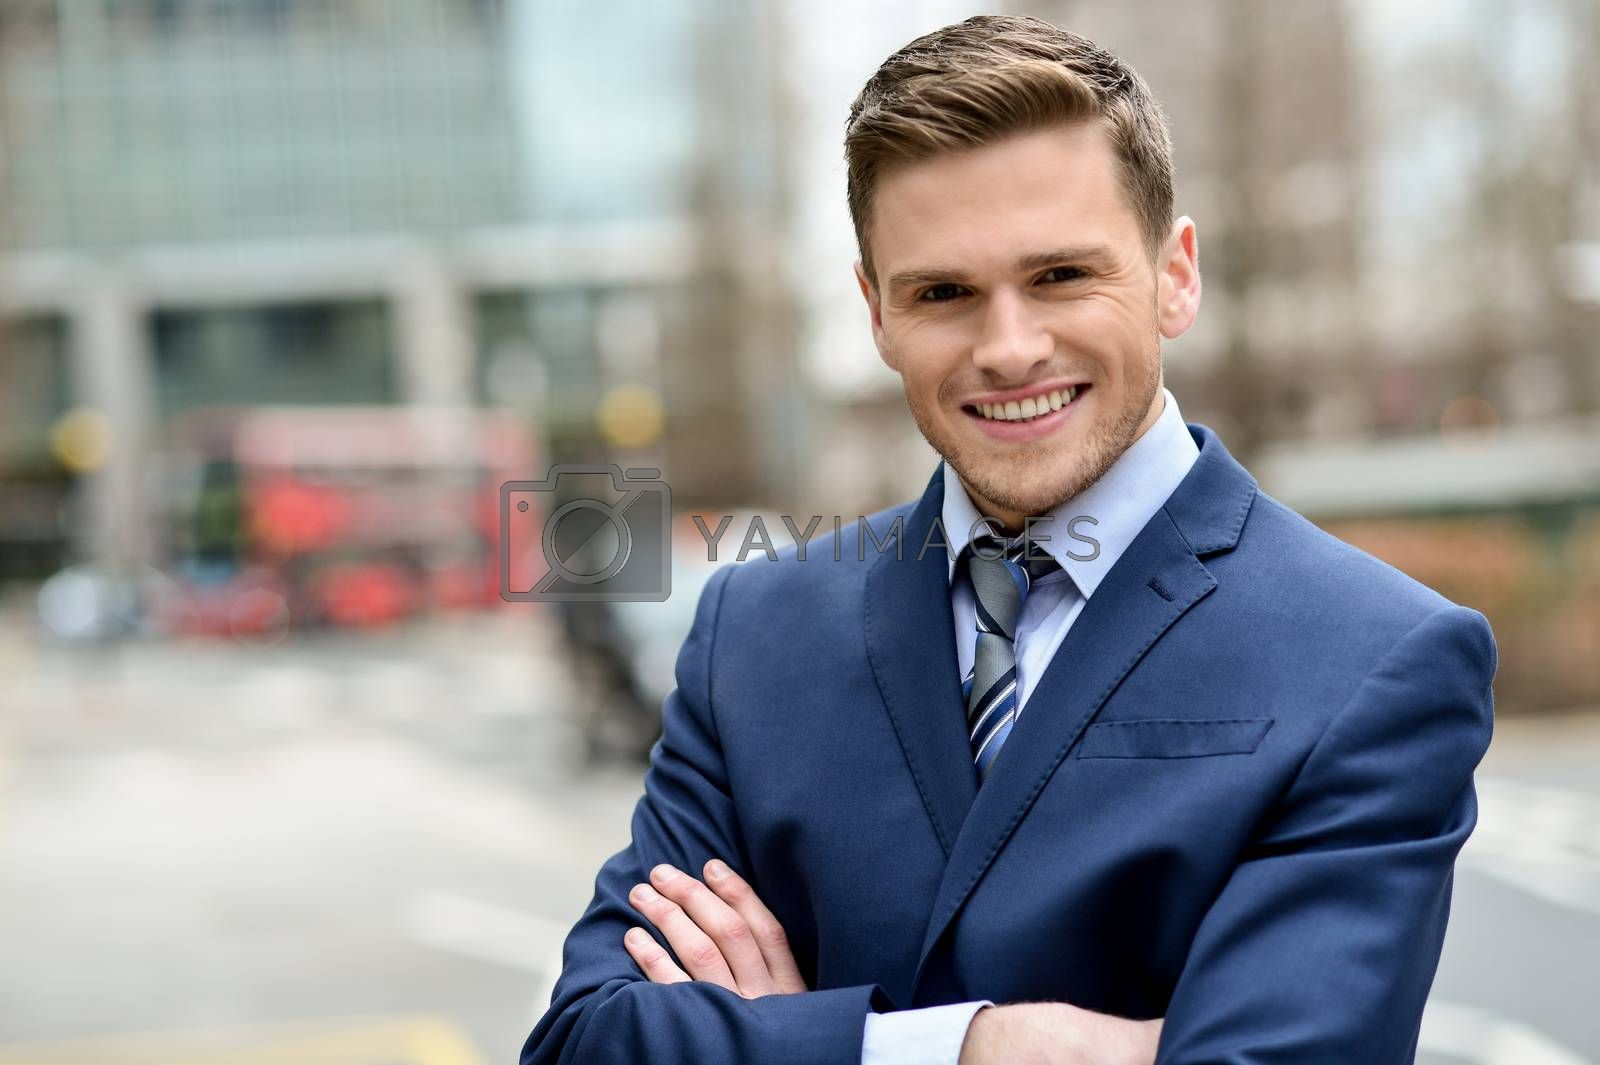 Royalty free image of Smiling businessman posing for the camera by stockyimages